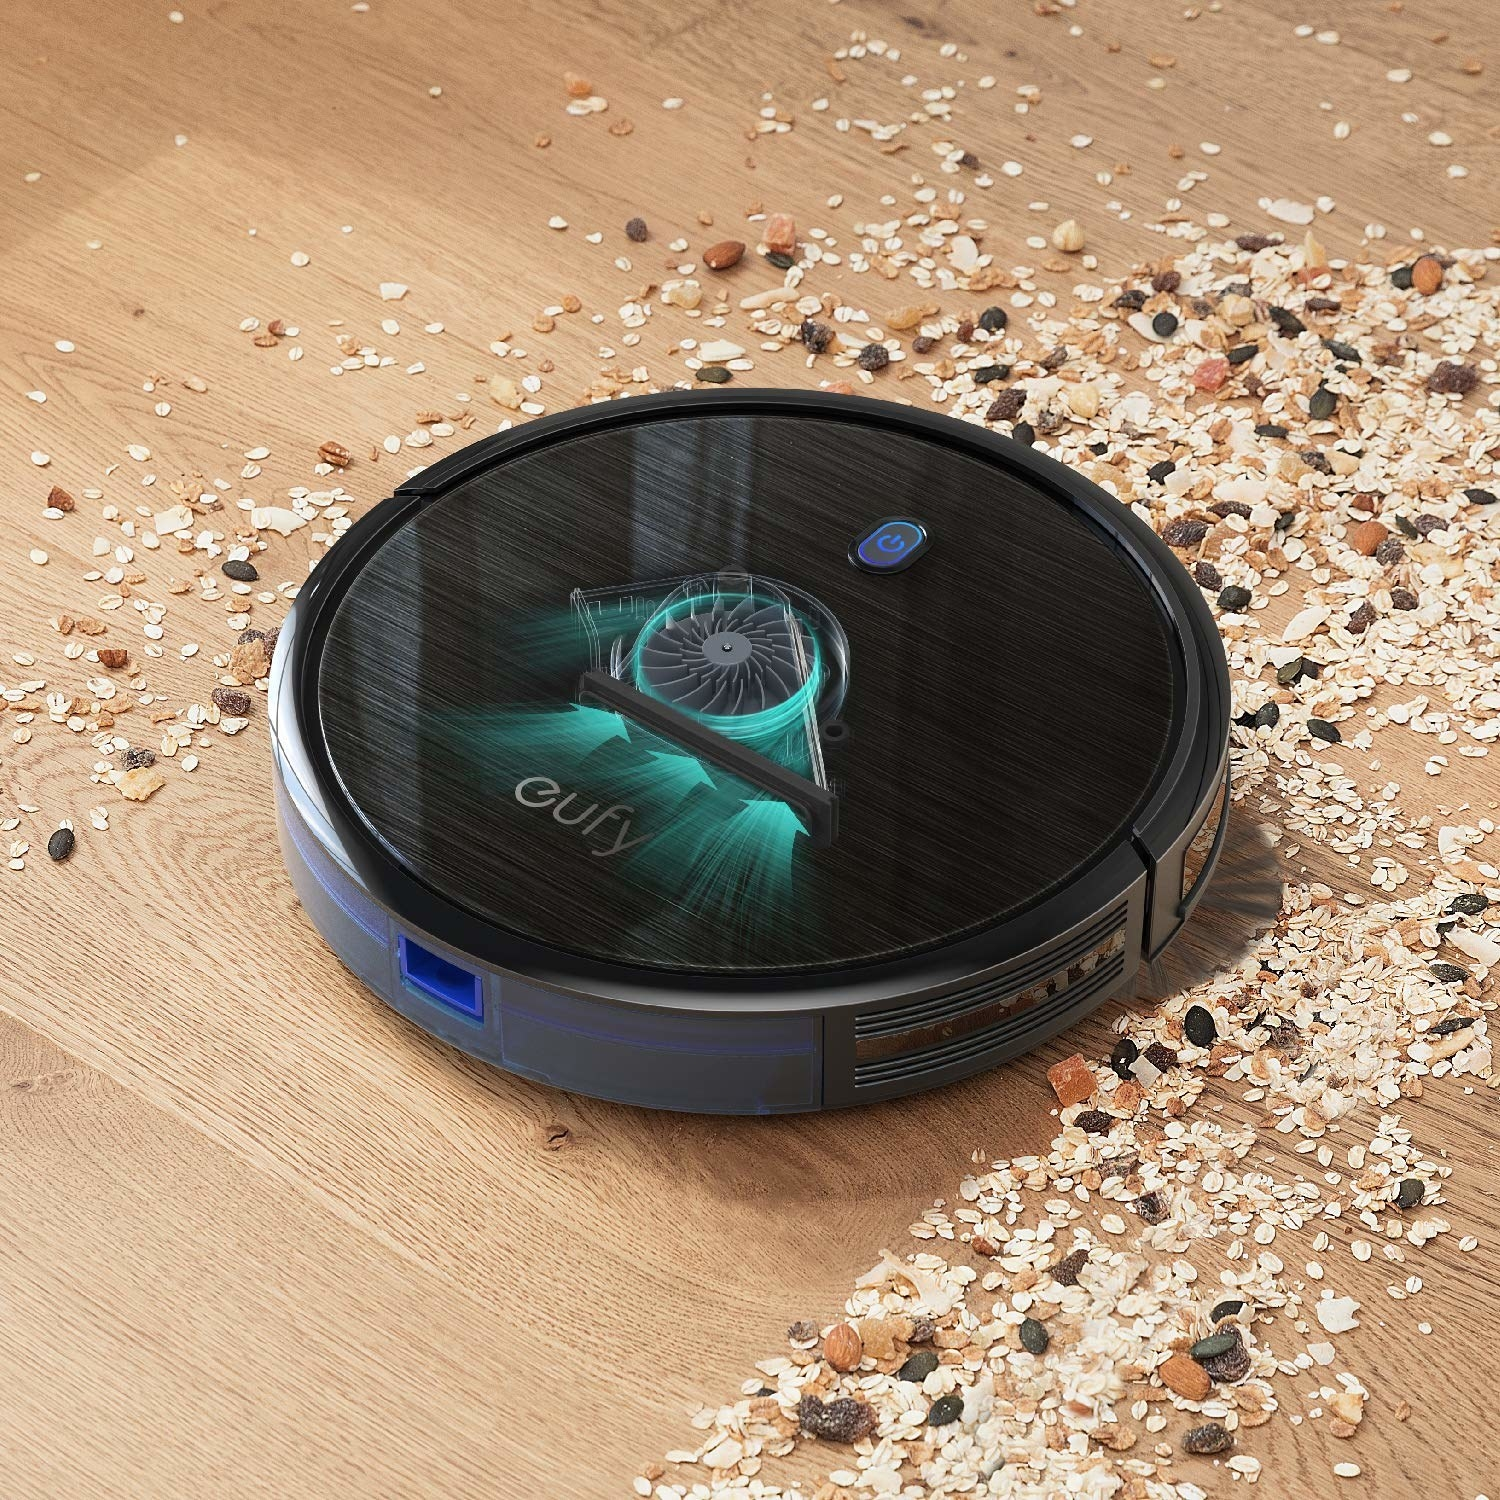 The robot vaccum picking up seeds and oats off hardwood floor